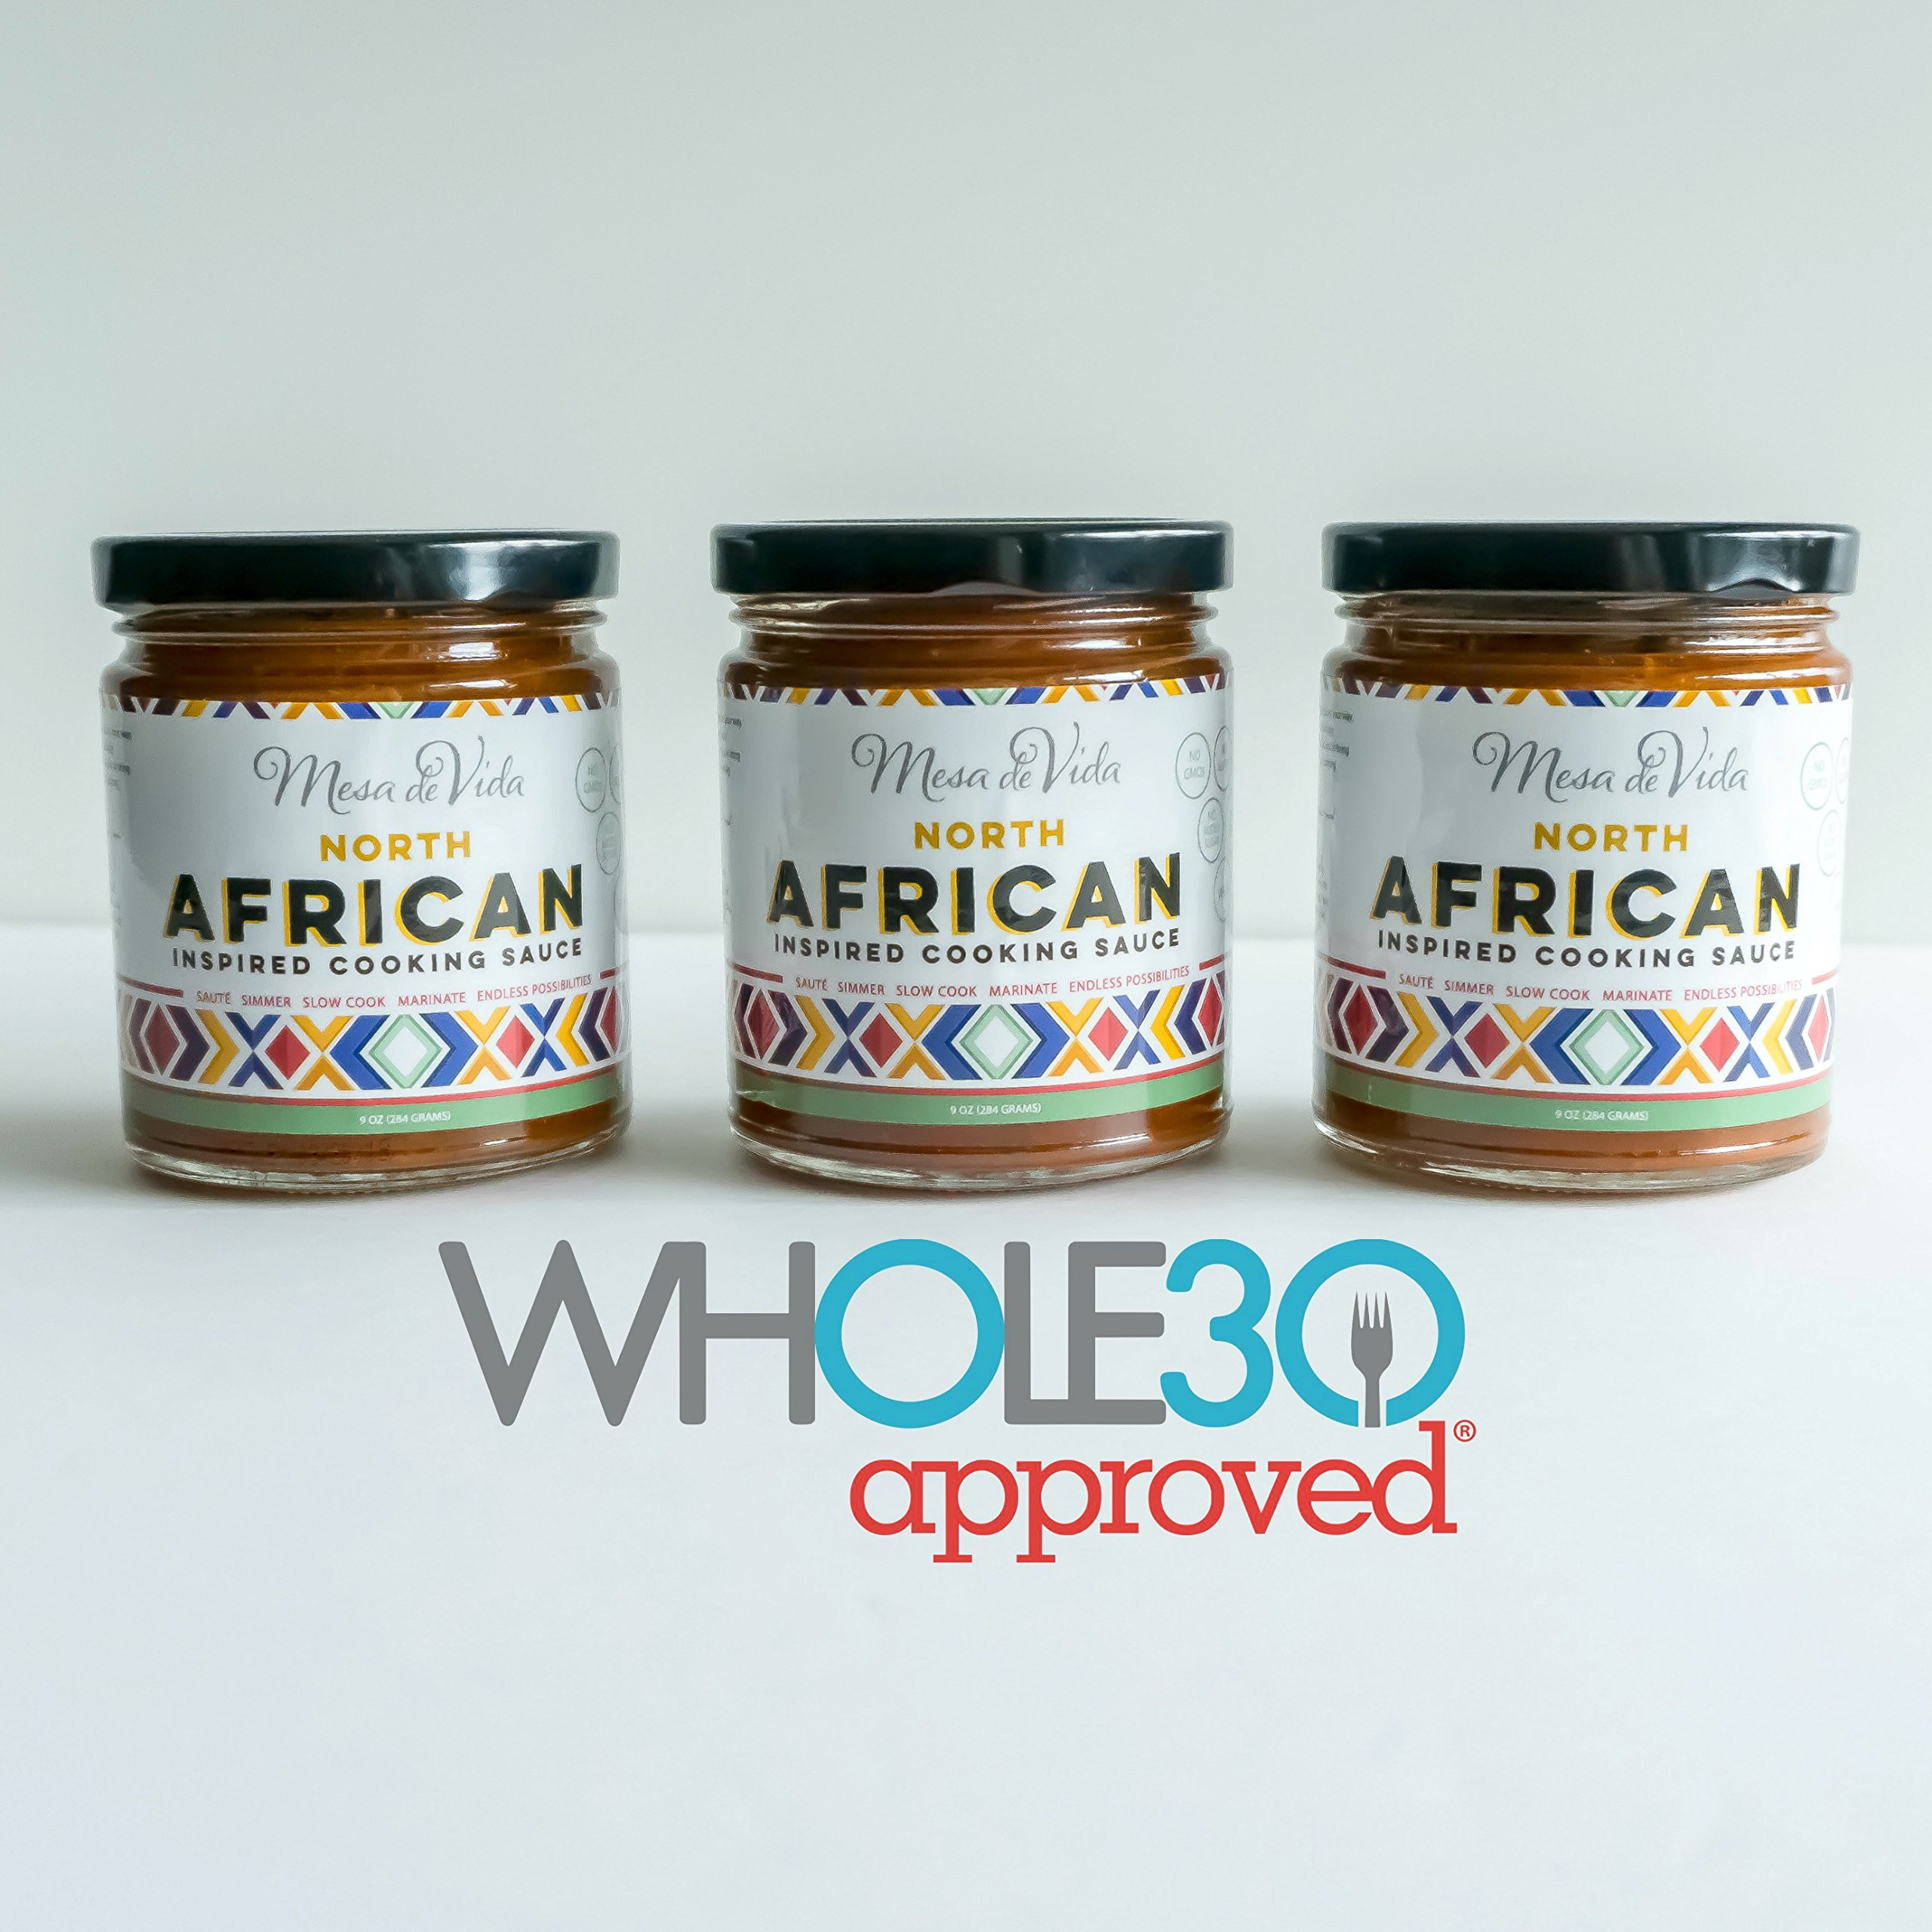 Healthy Global Gourmet Cooking & Seasoning Sauces (North African Cooking Sauce 3 Pack) Whole30